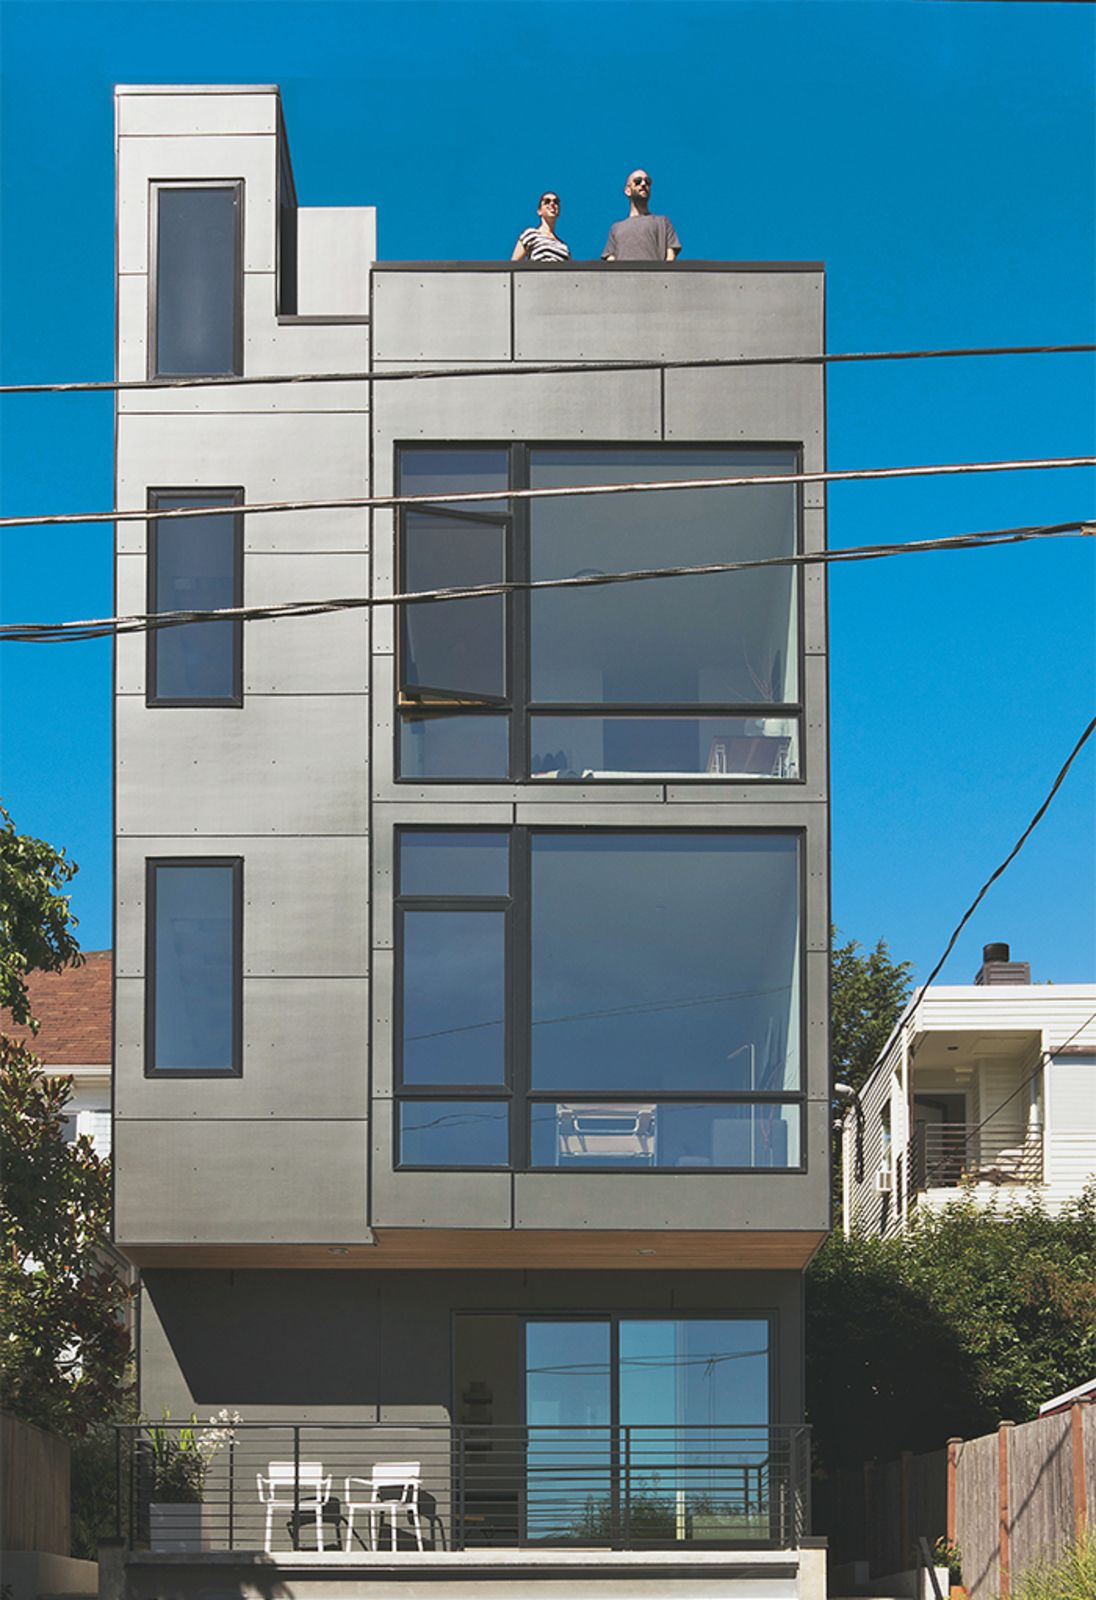 Prefinished cement fiberboard panels cover the rear facade.